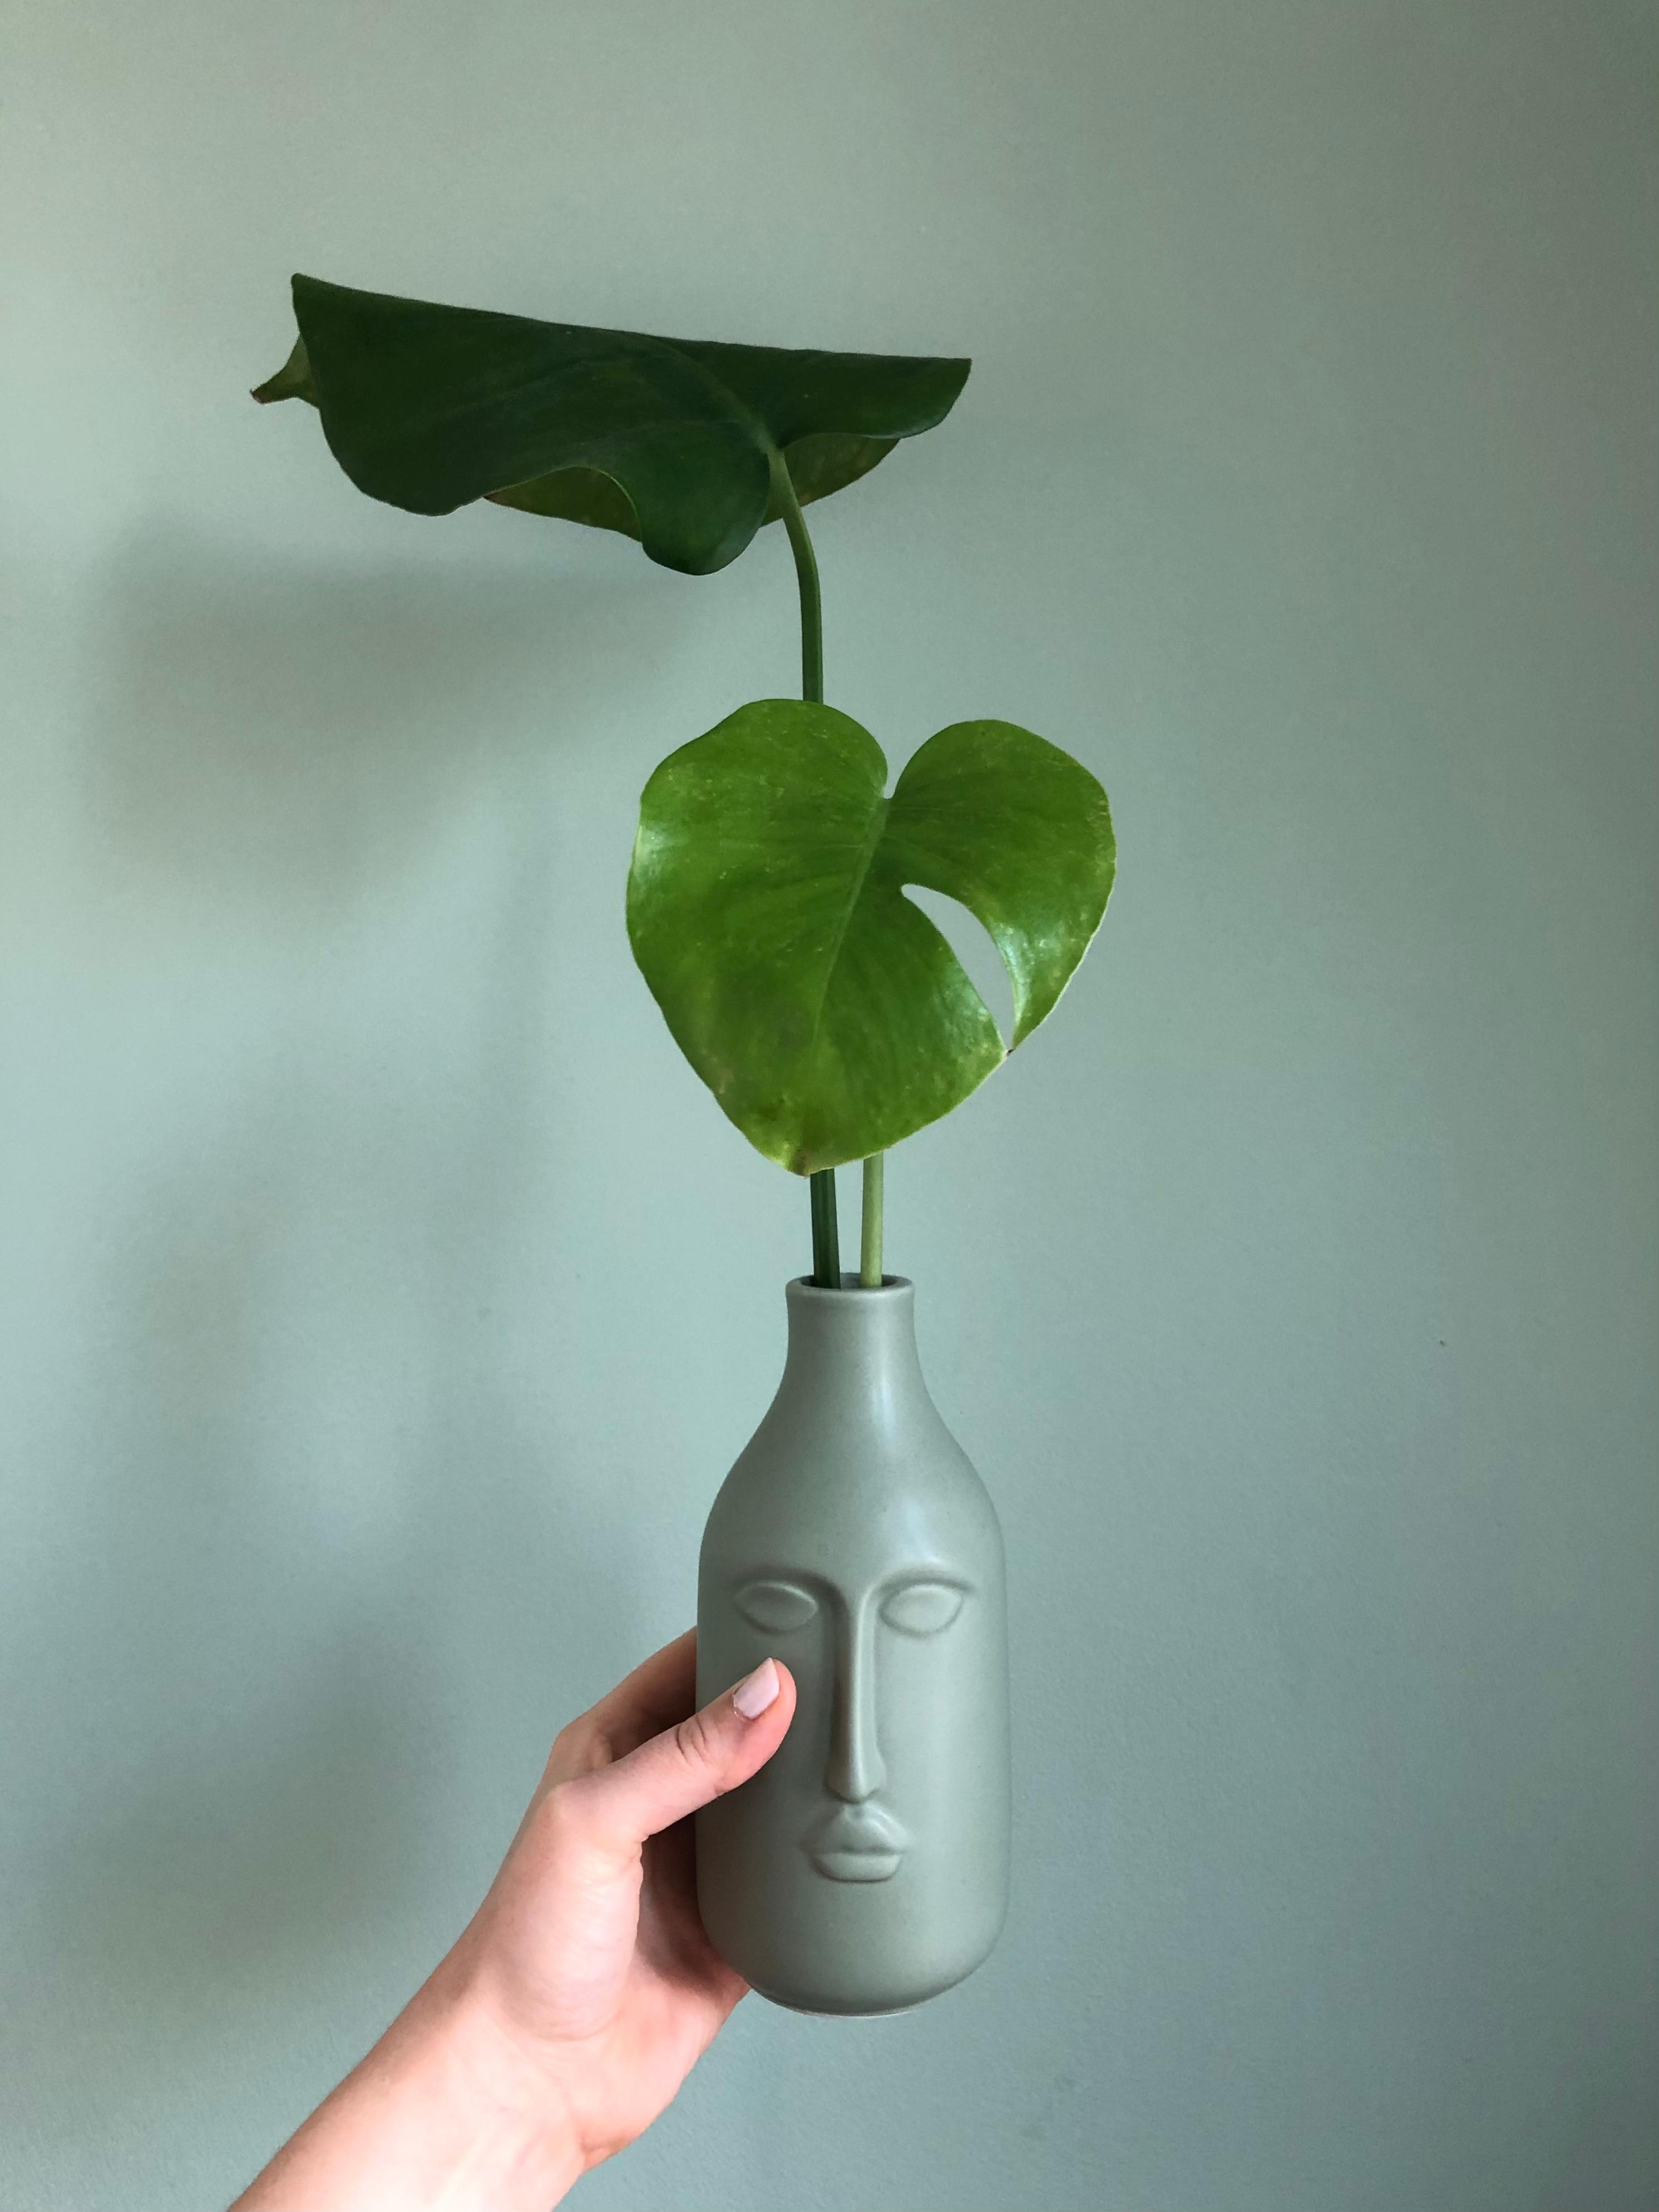 Face-Vase #vase #facevase #monstera